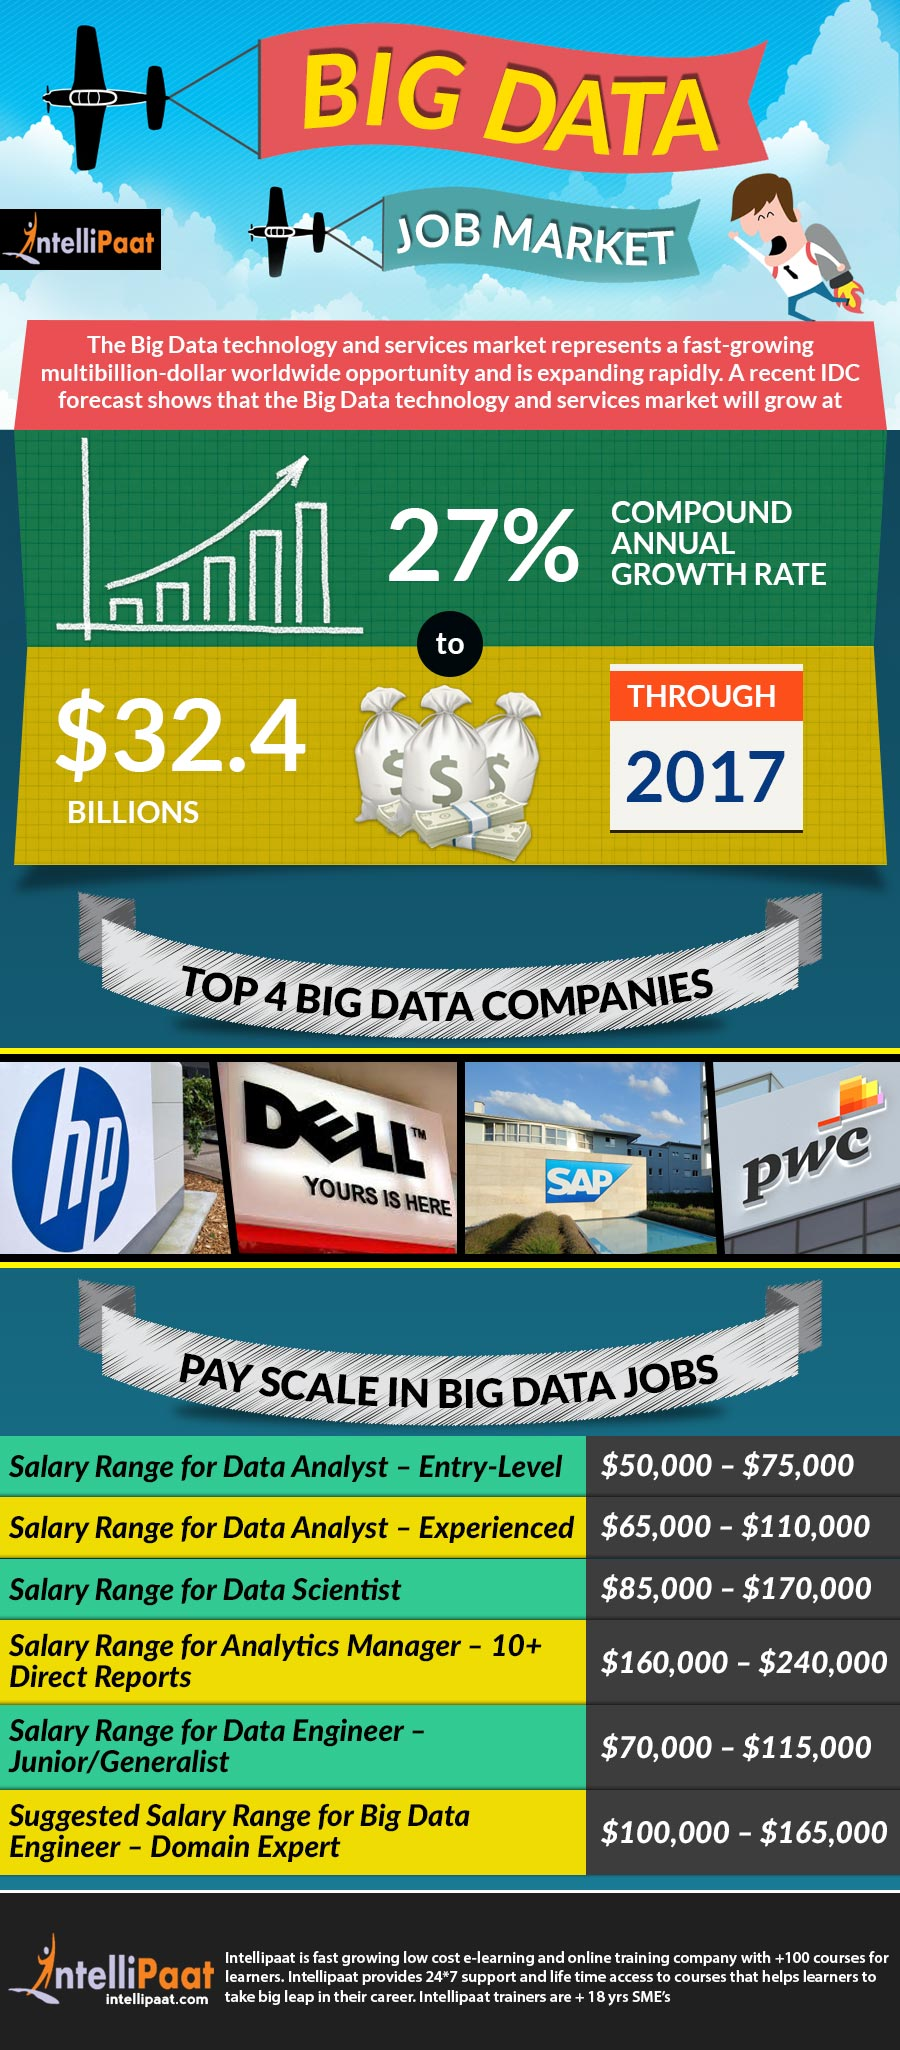 Big Data Job Market